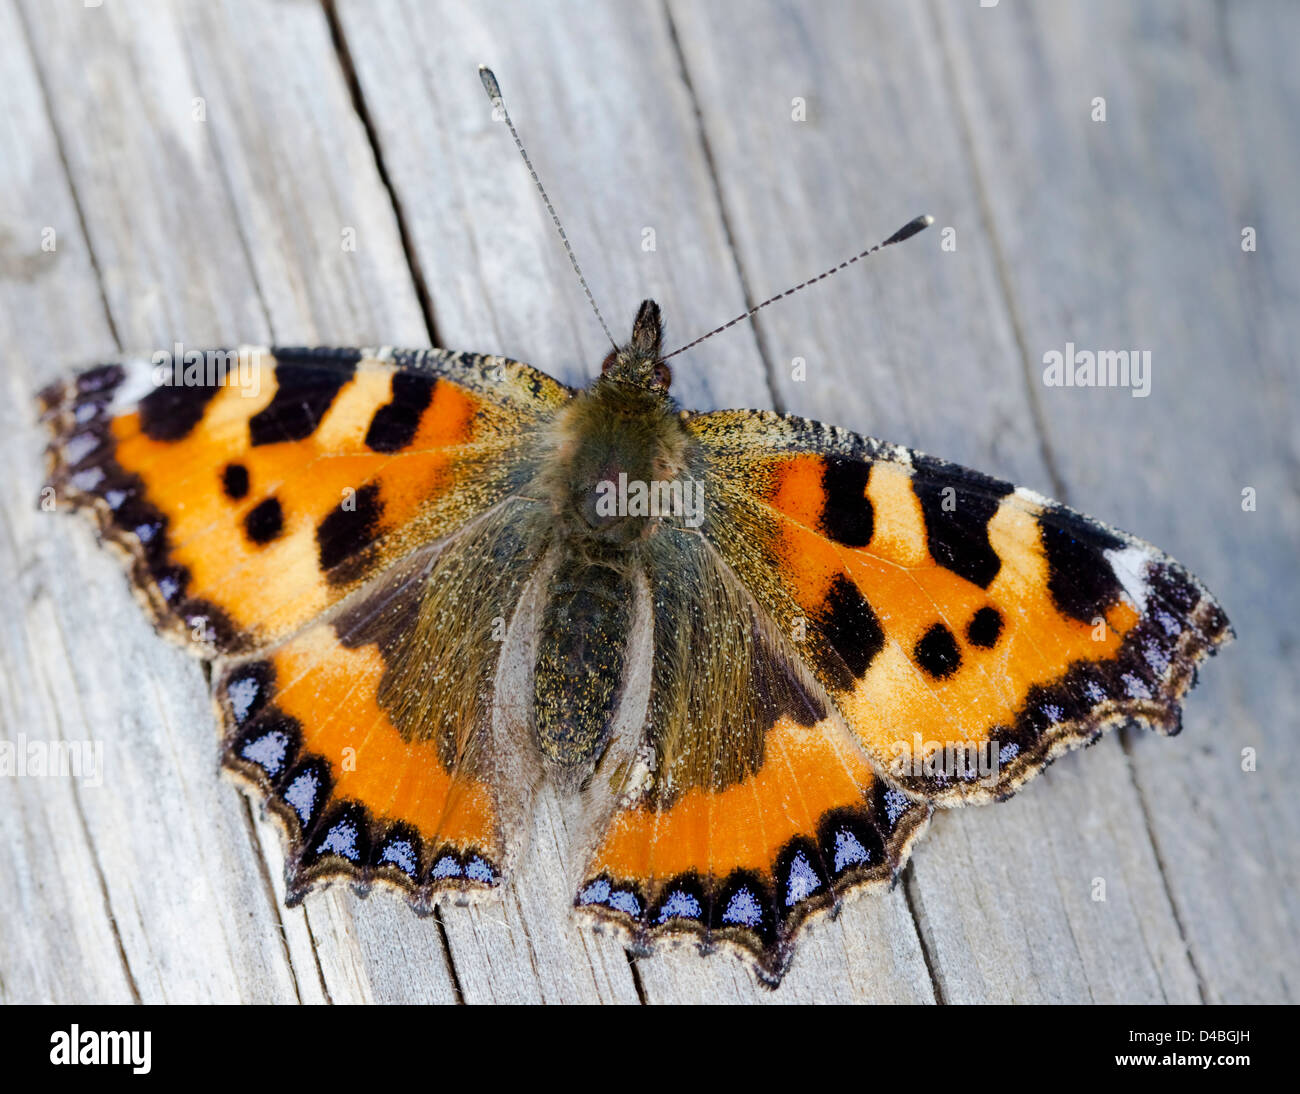 Aglais urticae,Small Tortoiseshell, butterfly with wings open resting on a tree trunk,top view - Stock Image